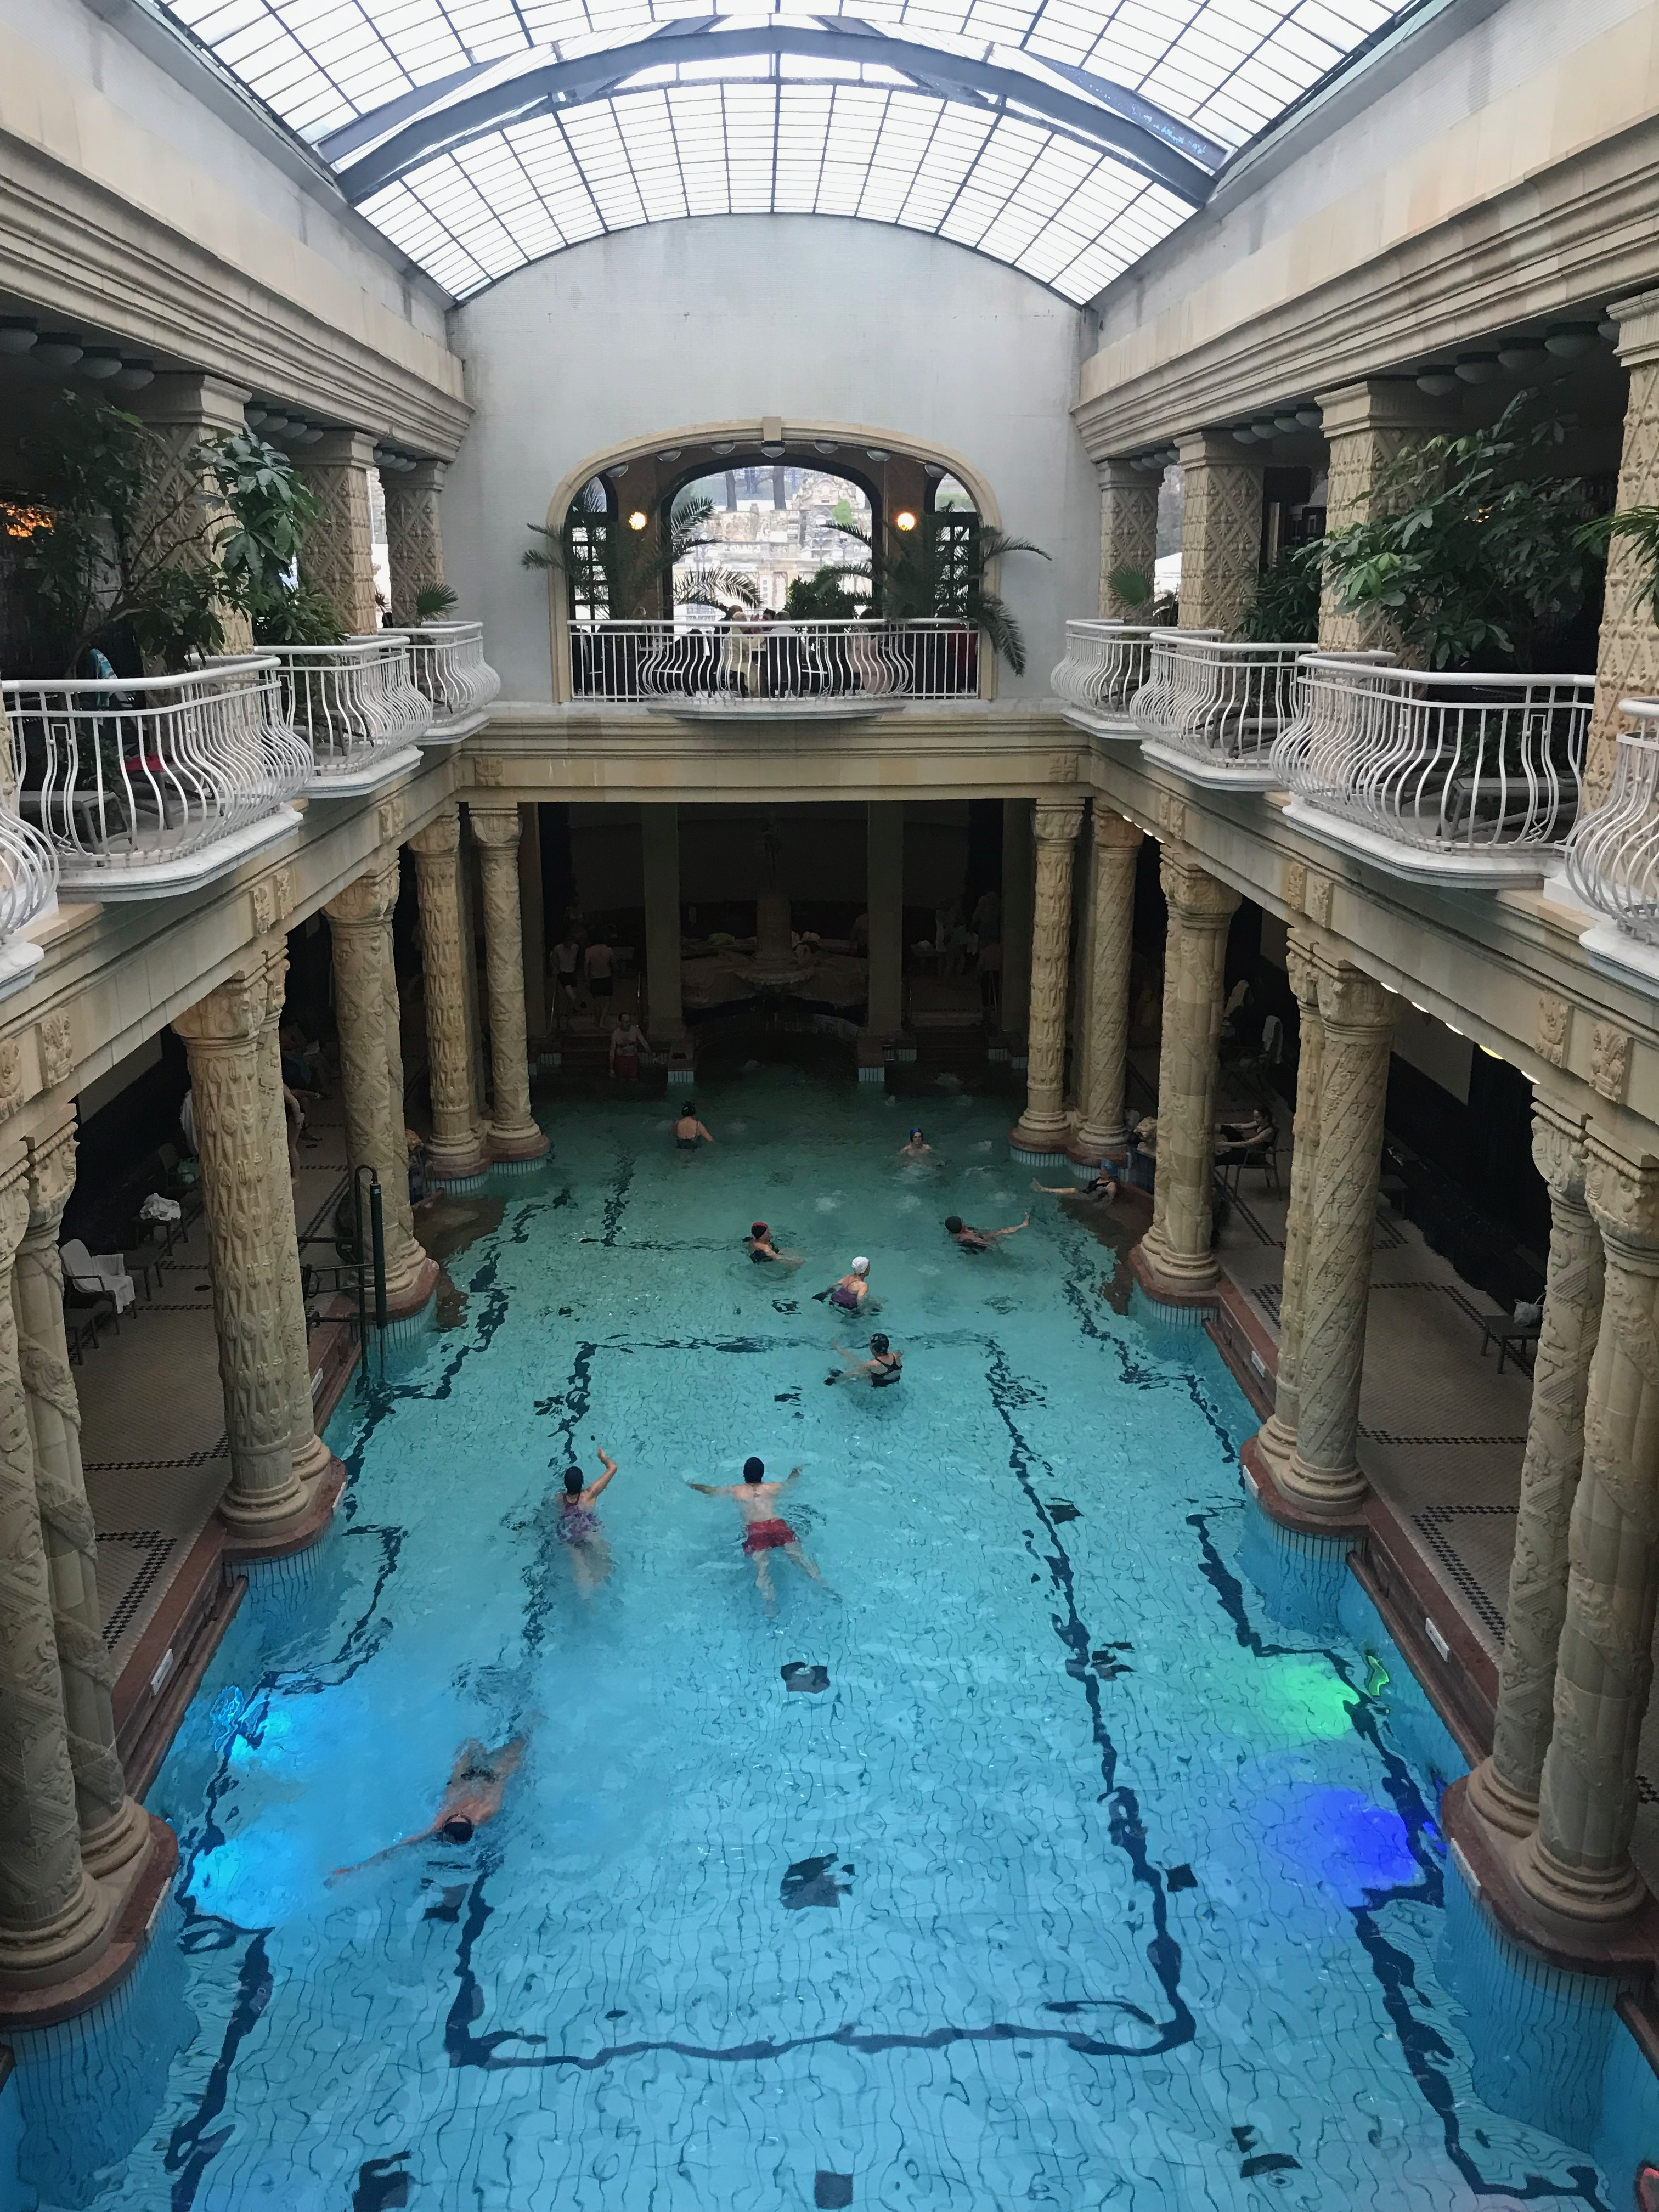 Gellert Spa in Budapest, Hungary, as seen from above the indoor swimming pool